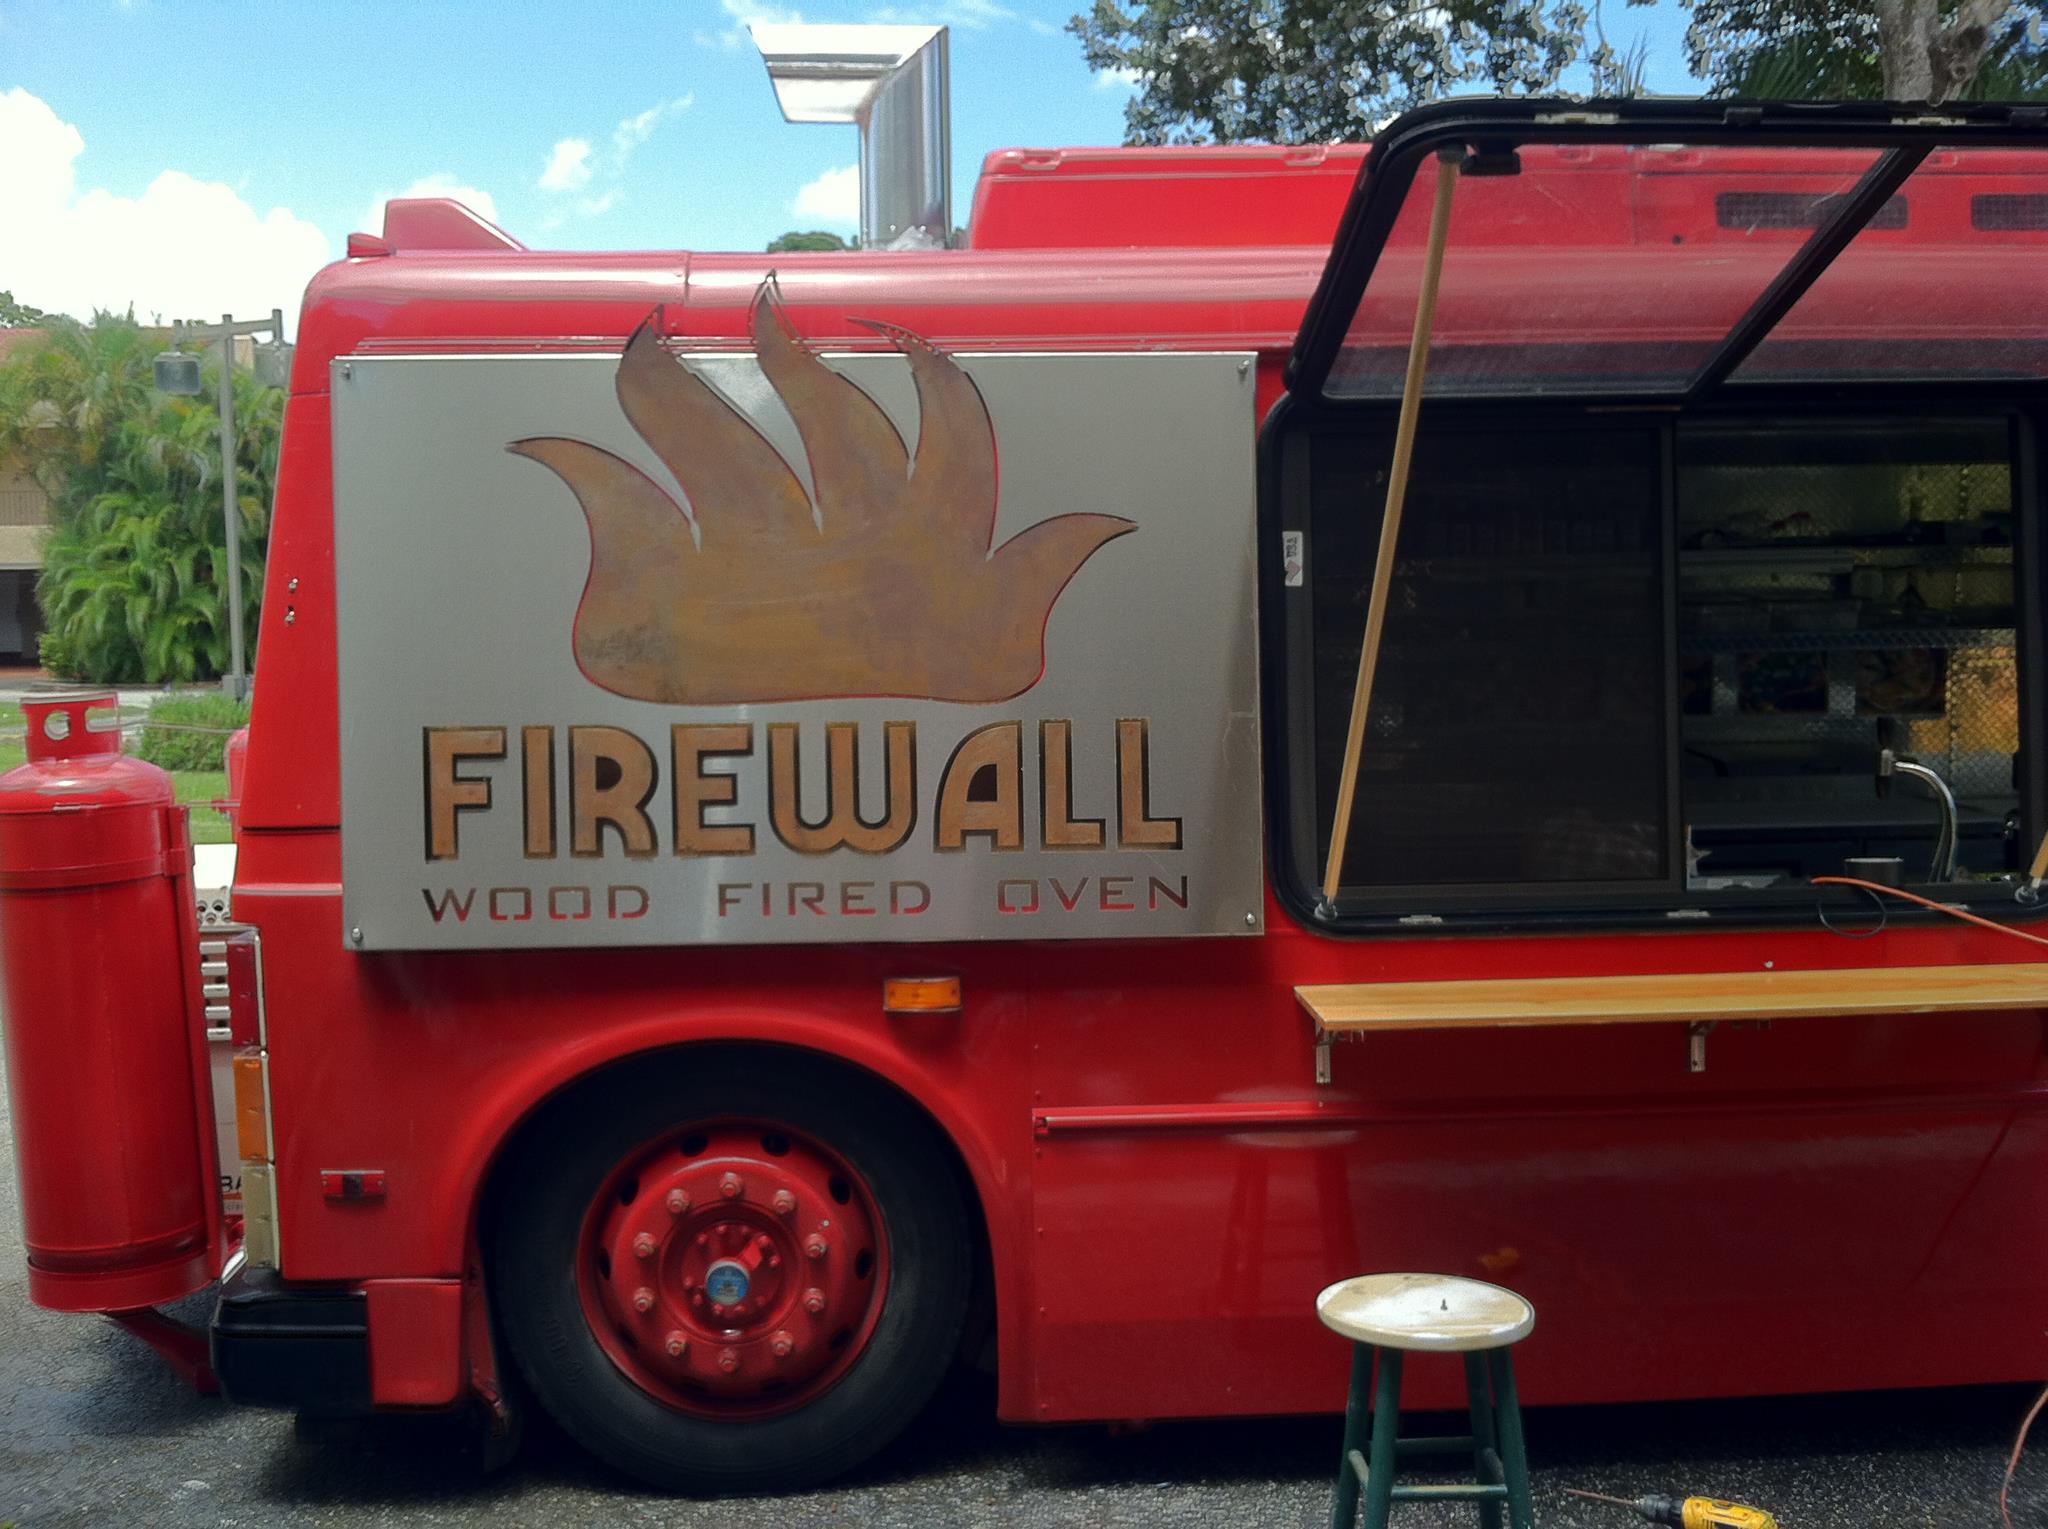 Firewall Food Stop Opens for Weekend Wood-Fired Pizzas in Westview